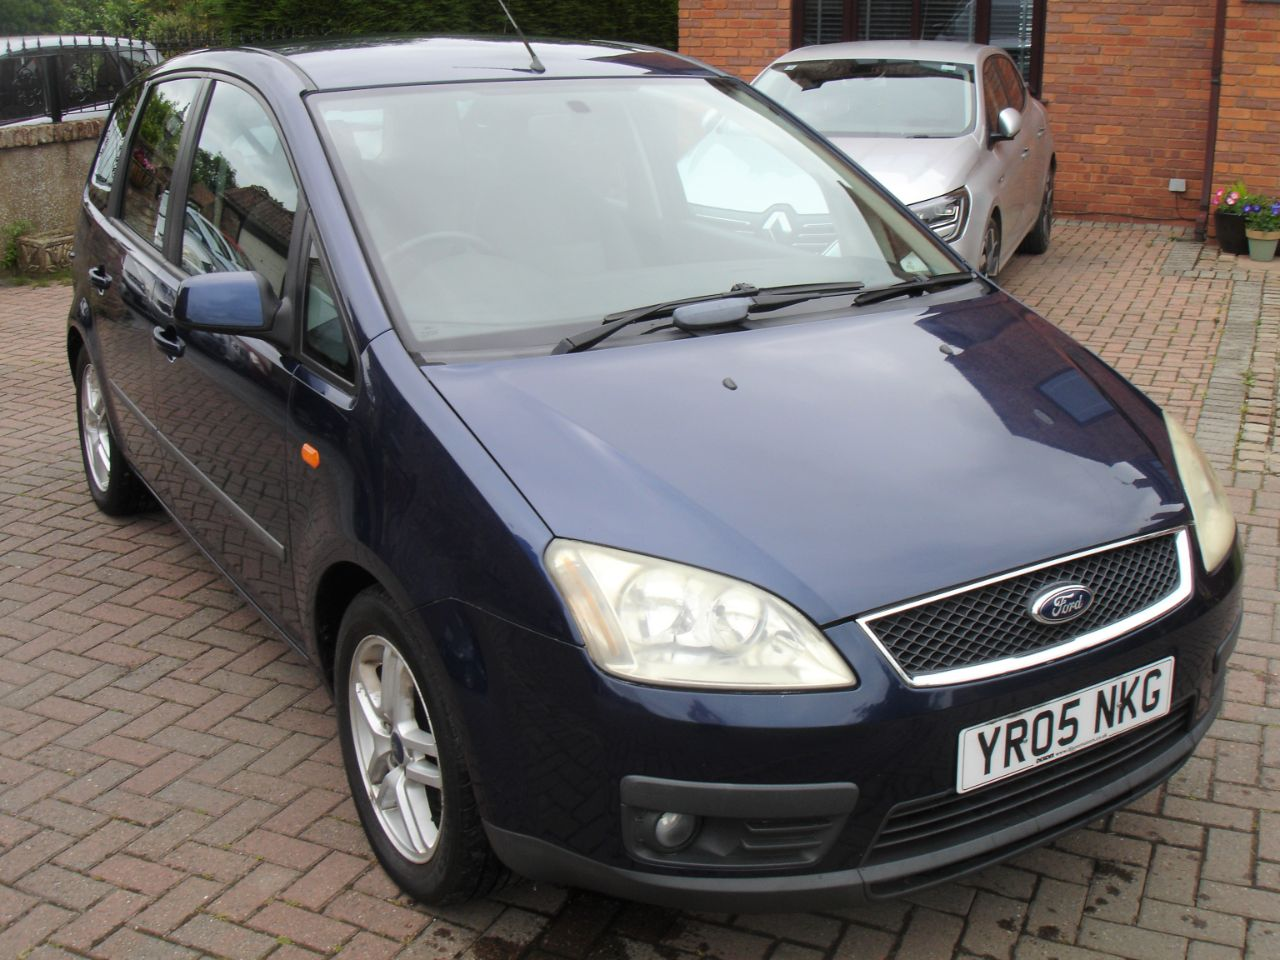 Ford Focus C-MAX 1.8 Zetec [125] 5dr MPV Petrol Metallic Blue at Level Pitch Selby